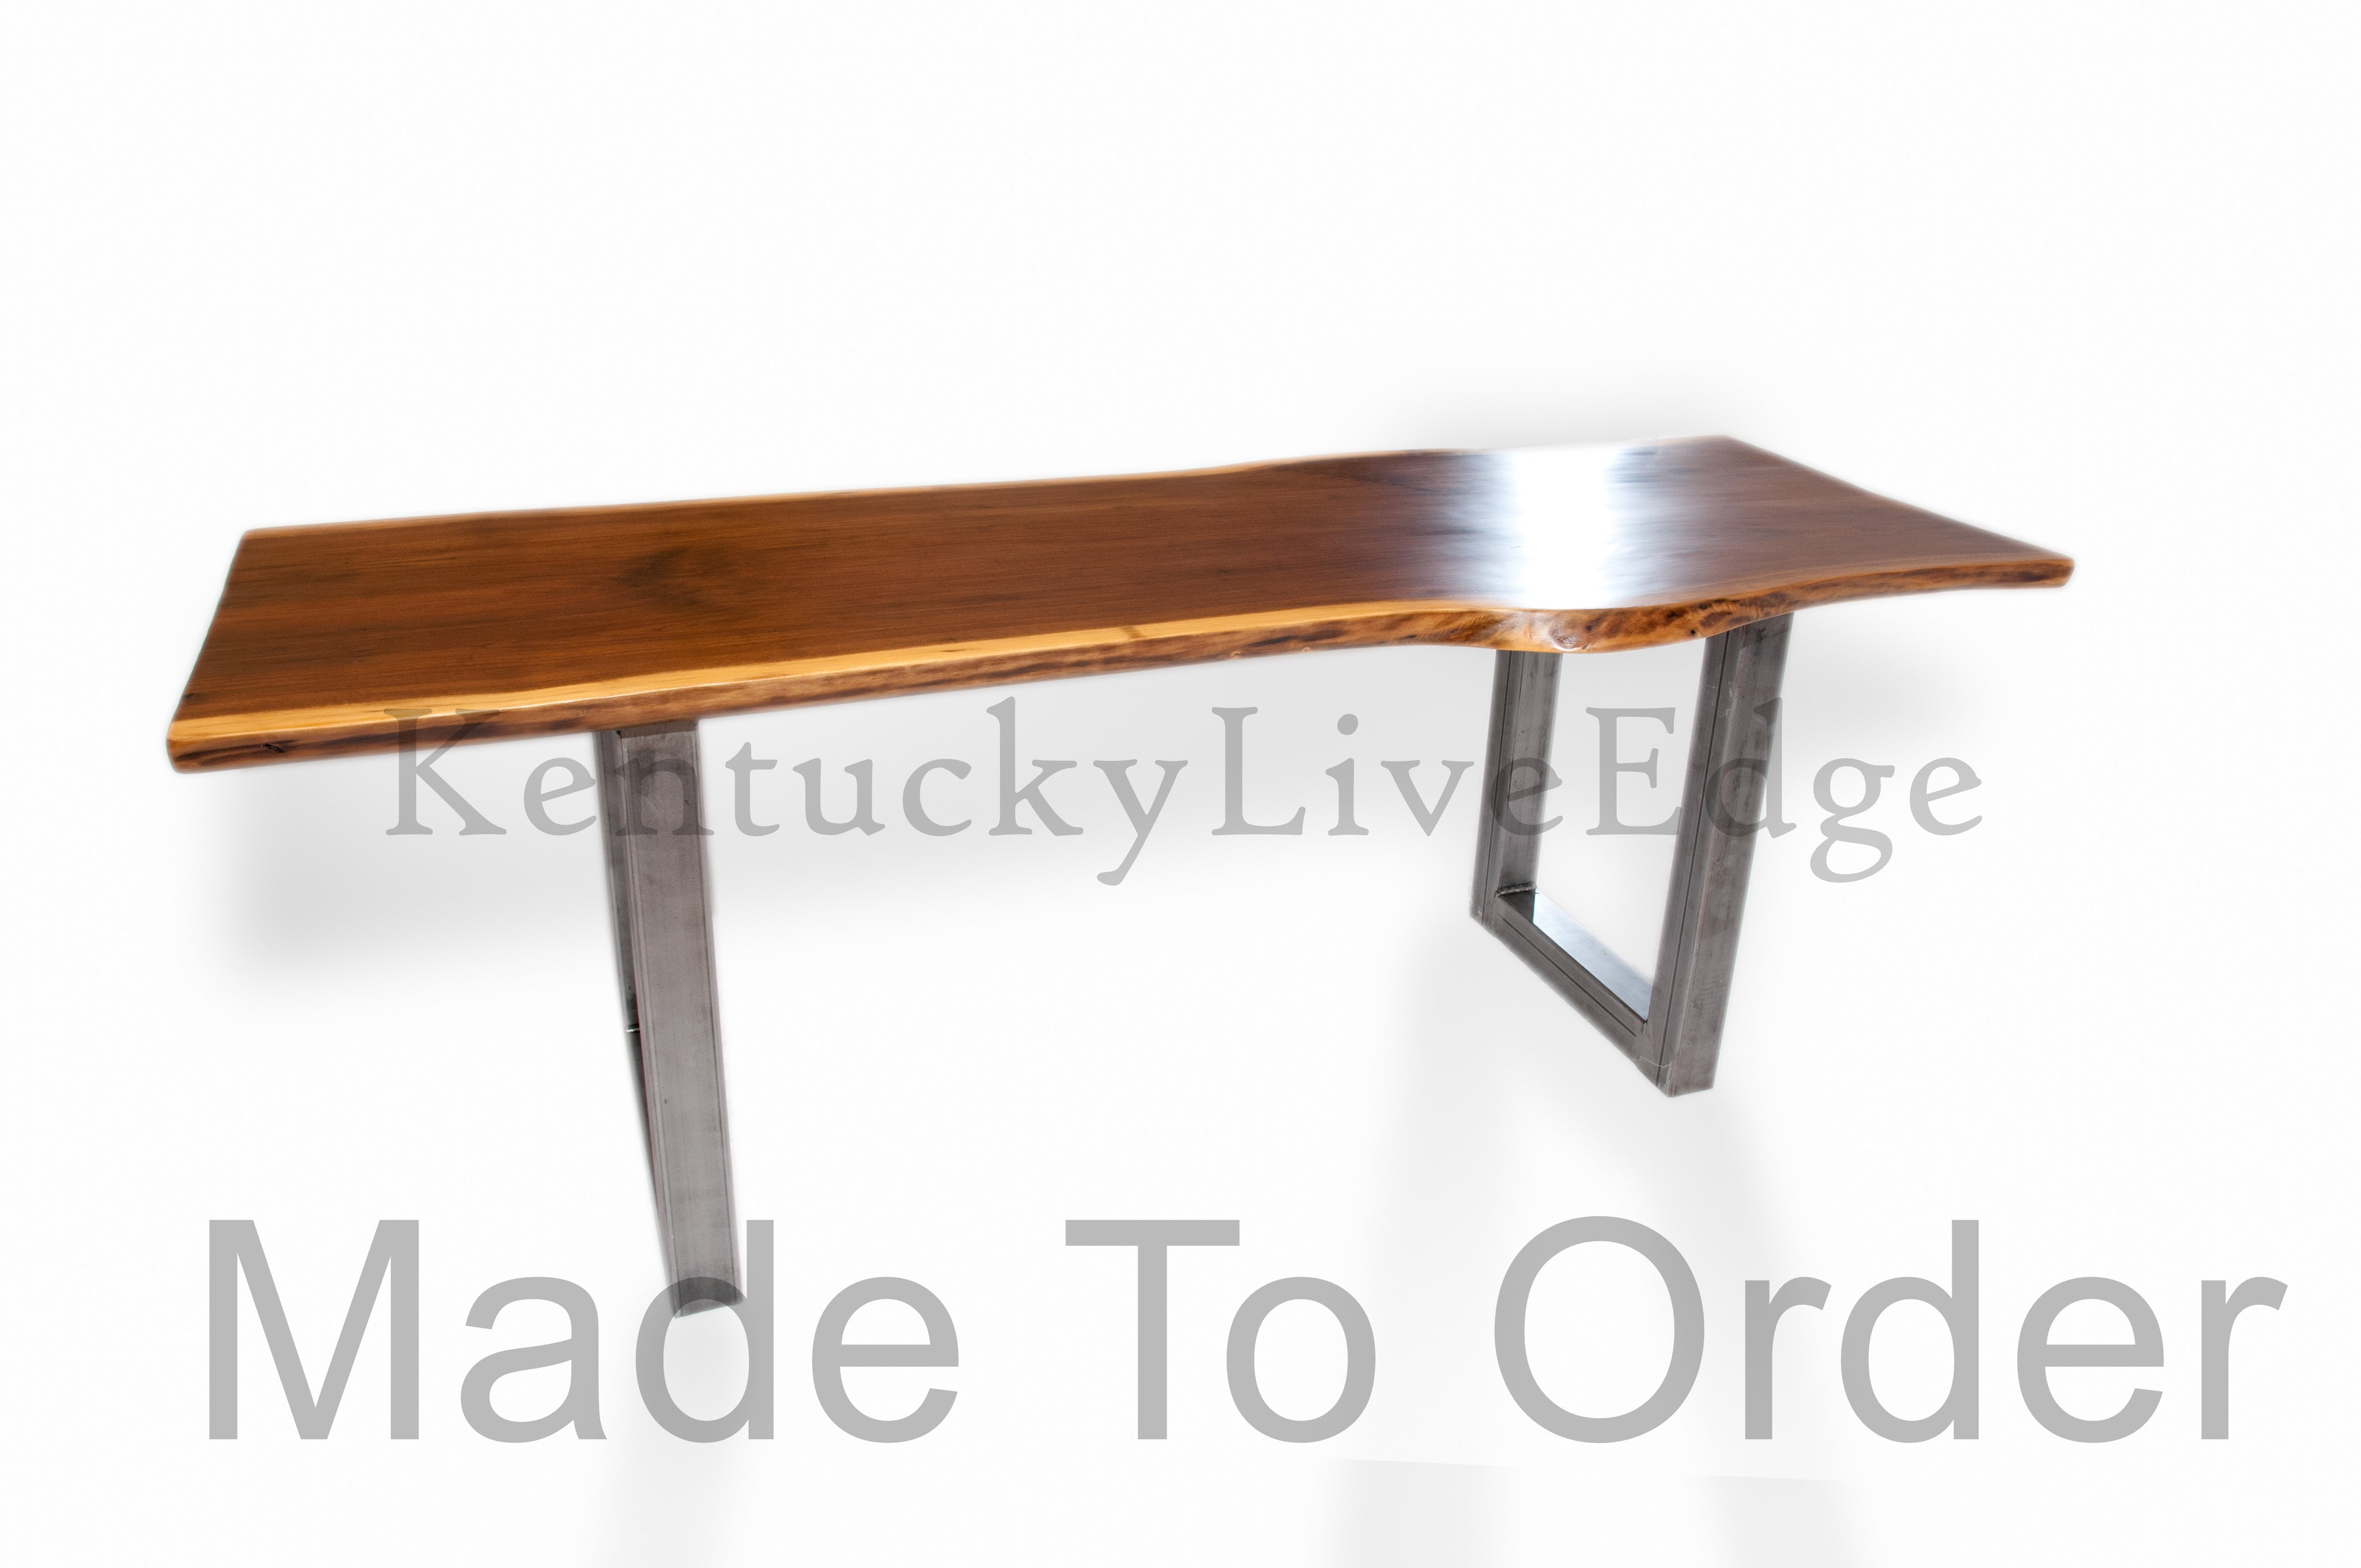 Made to Order Dining Table Conference Table Live Edge  : SideWatermarked from kentuckyliveedge.com size 4096 x 2720 jpeg 493kB